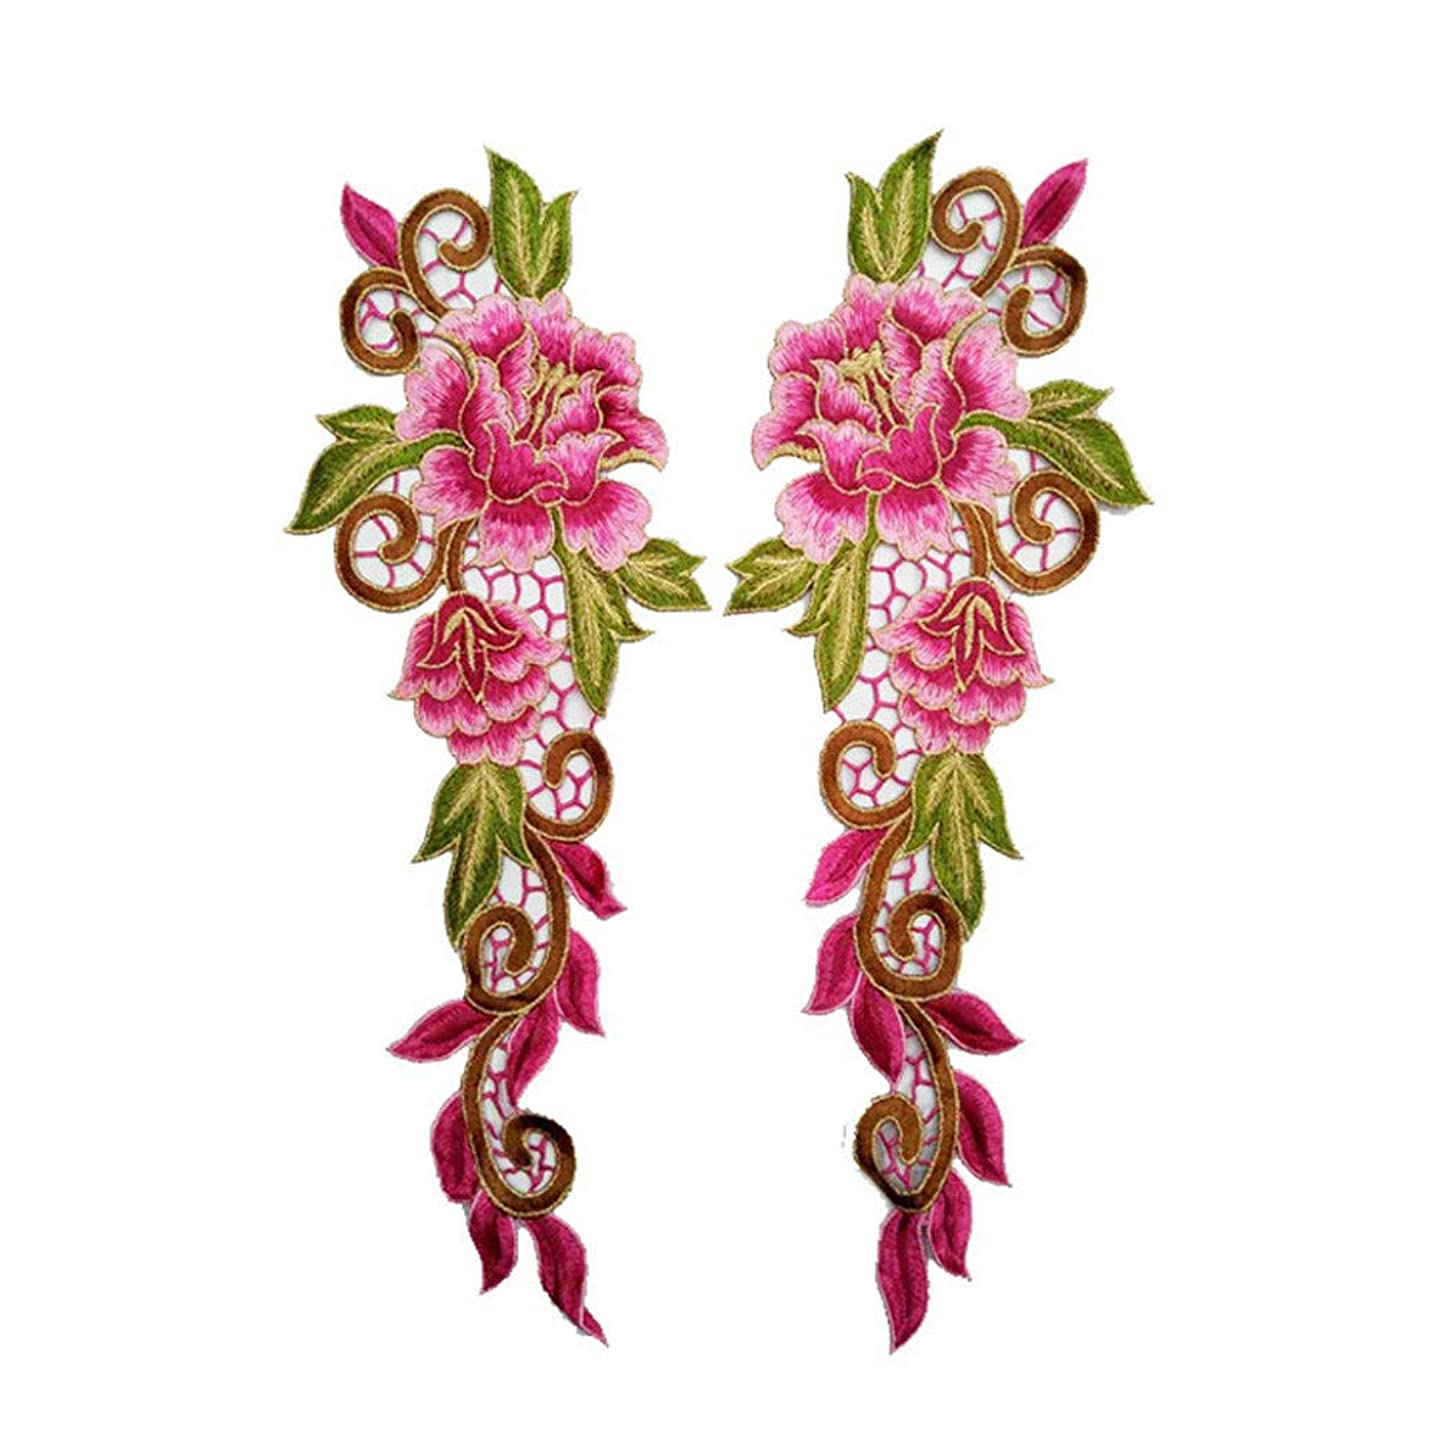 2pcs/Set Embroidery Rose Flower Sew On/Iron On Patch Applique DIY Crafts Stiker Patches for Jeans Hat Bag Clothes Accessories Badges (A1)